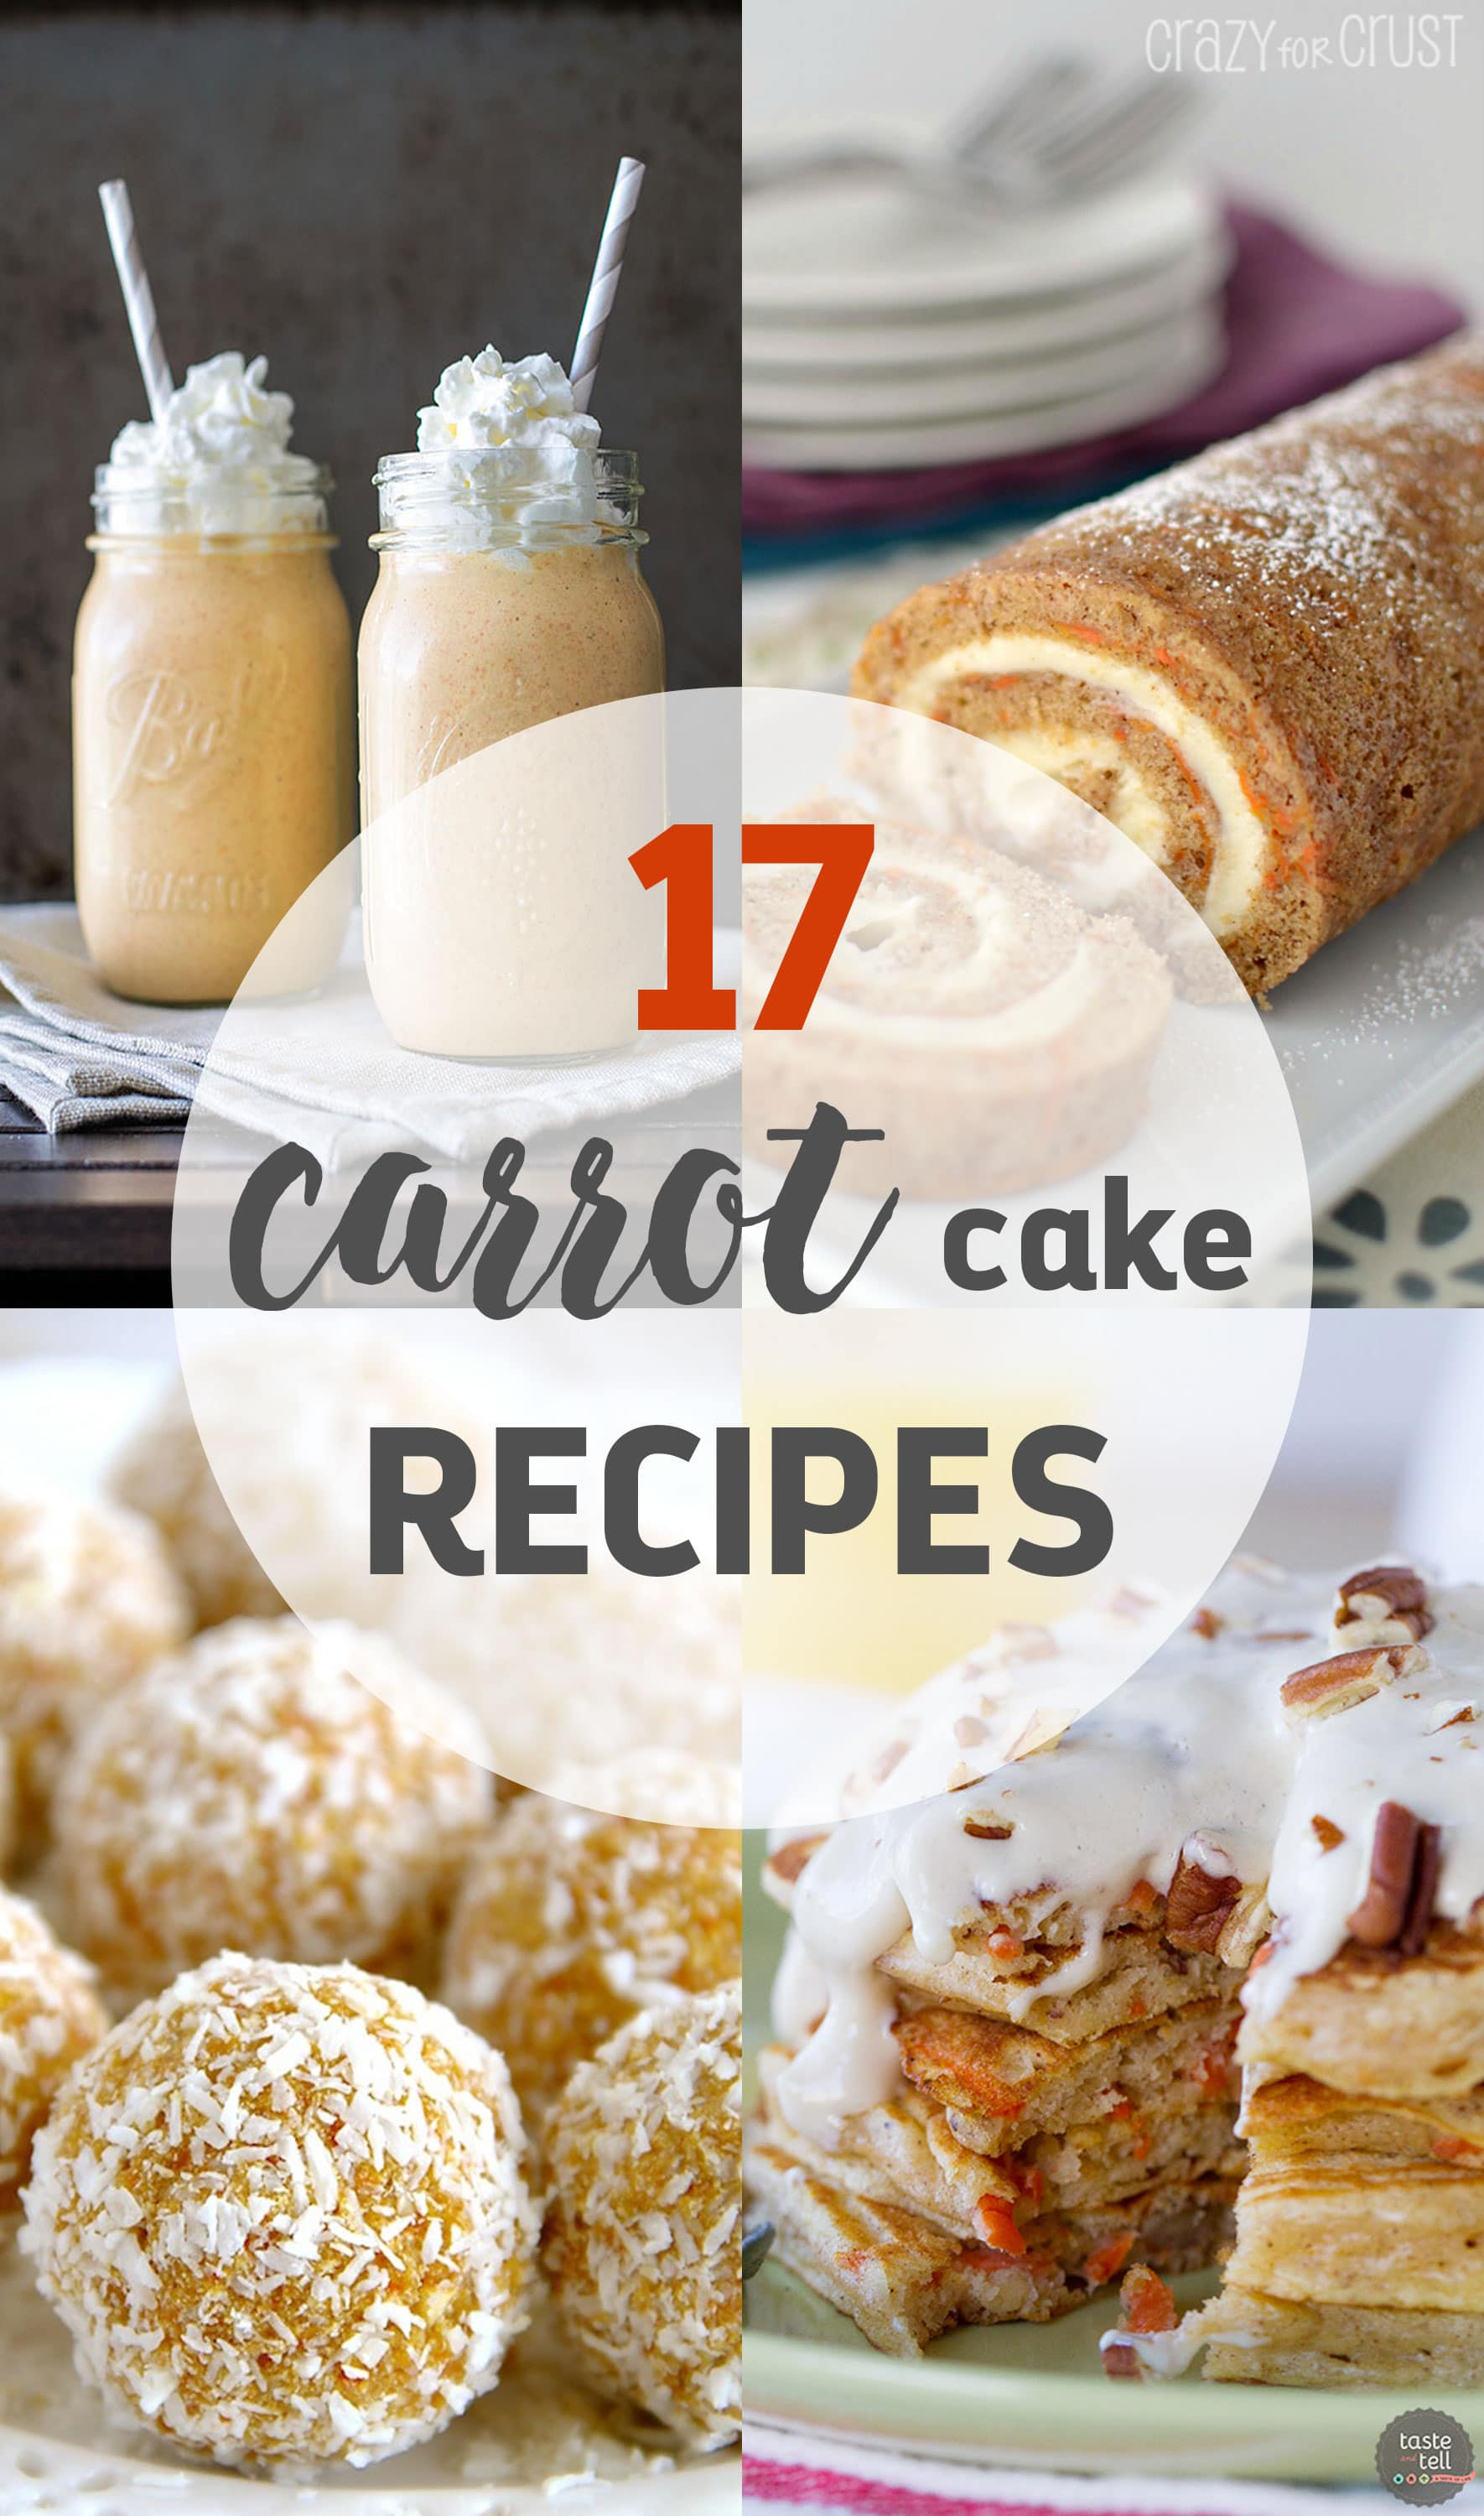 An amazing list of 17 unique, creative and delicious carrot cake recipes that everyone will love! Cookies, cinnamon rolls, smoothie, pancakes, and more!